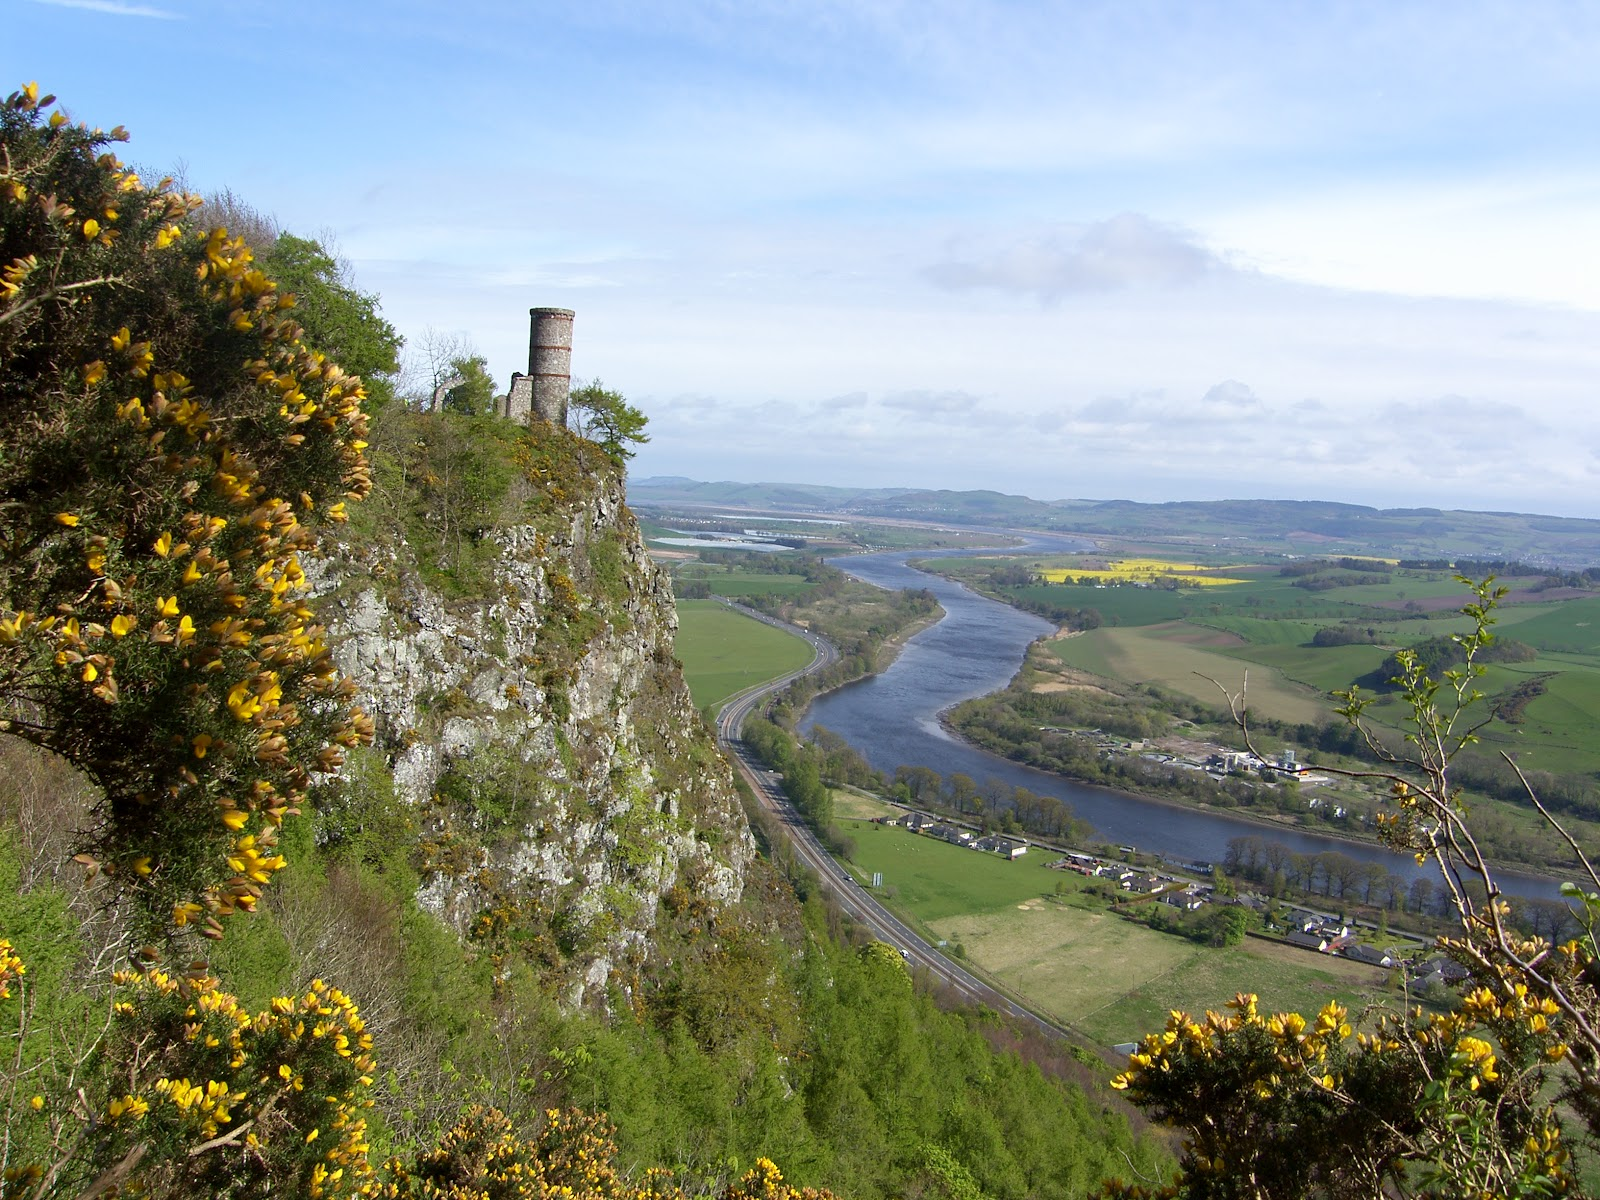 Google map for directions to Kinnoull Hill